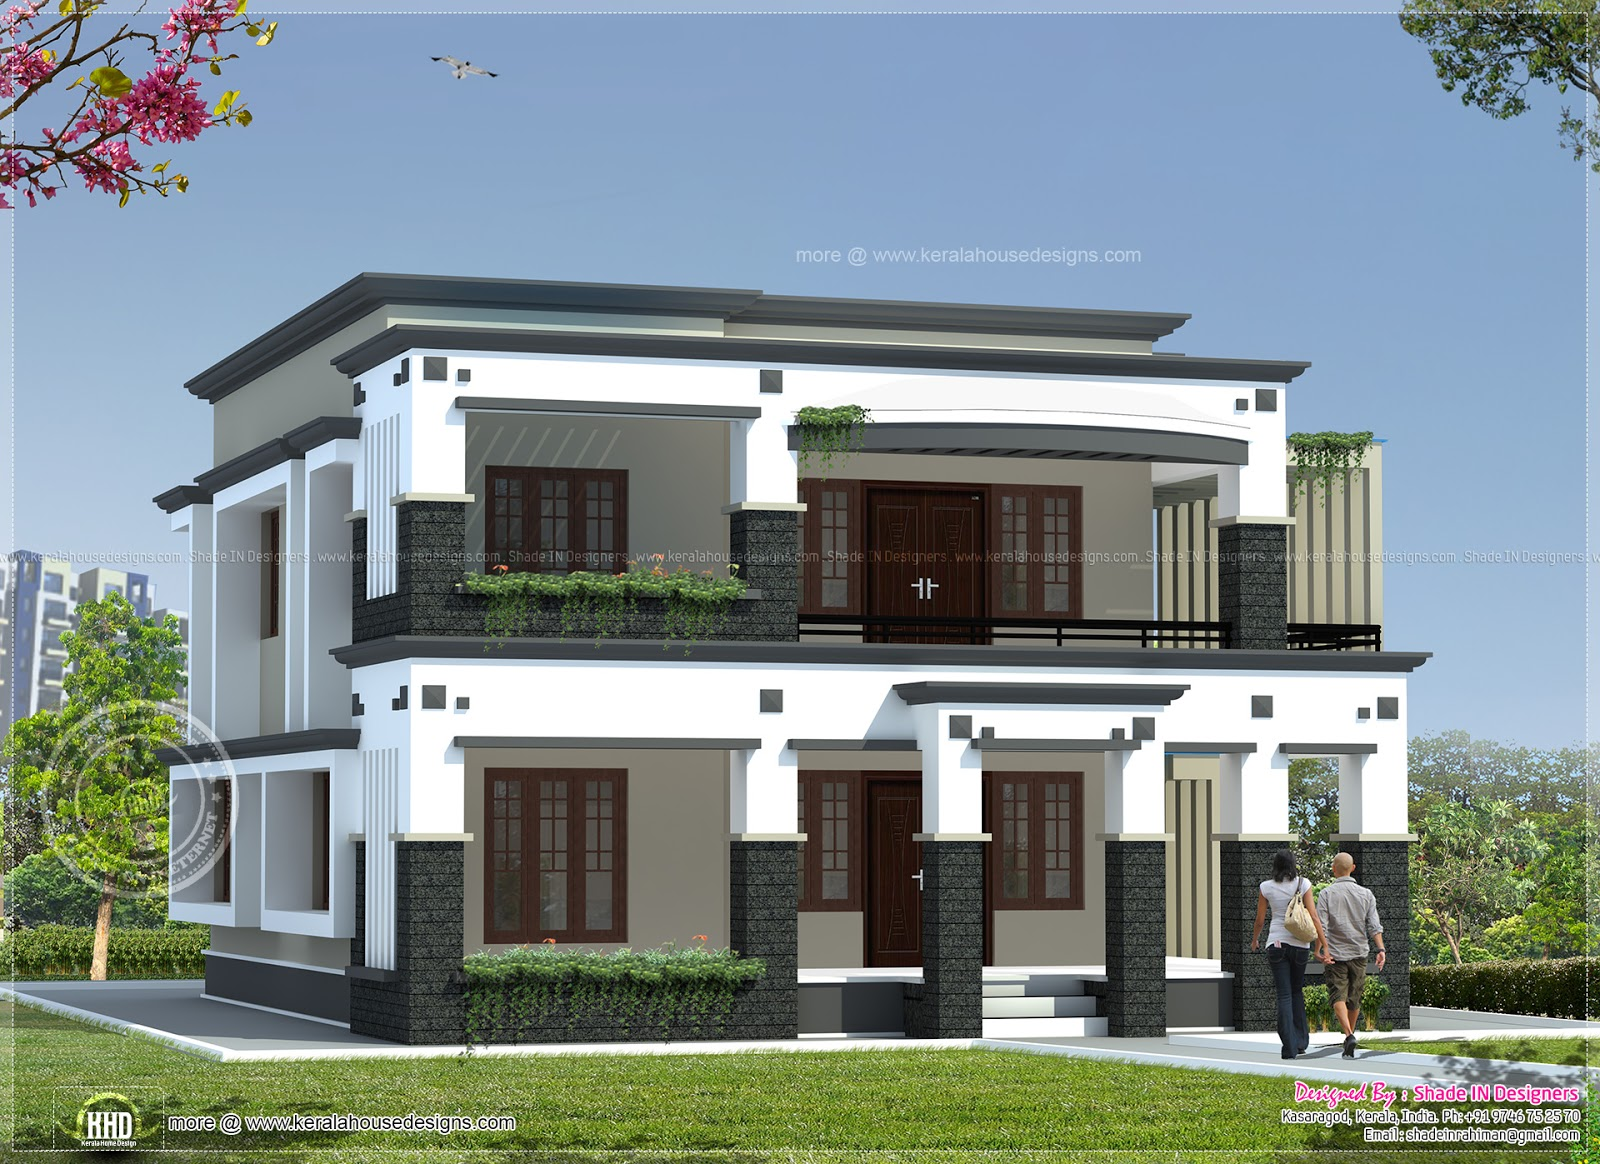 241 square meter flat roof house kerala home design and floor plans for Flat roof house plans design